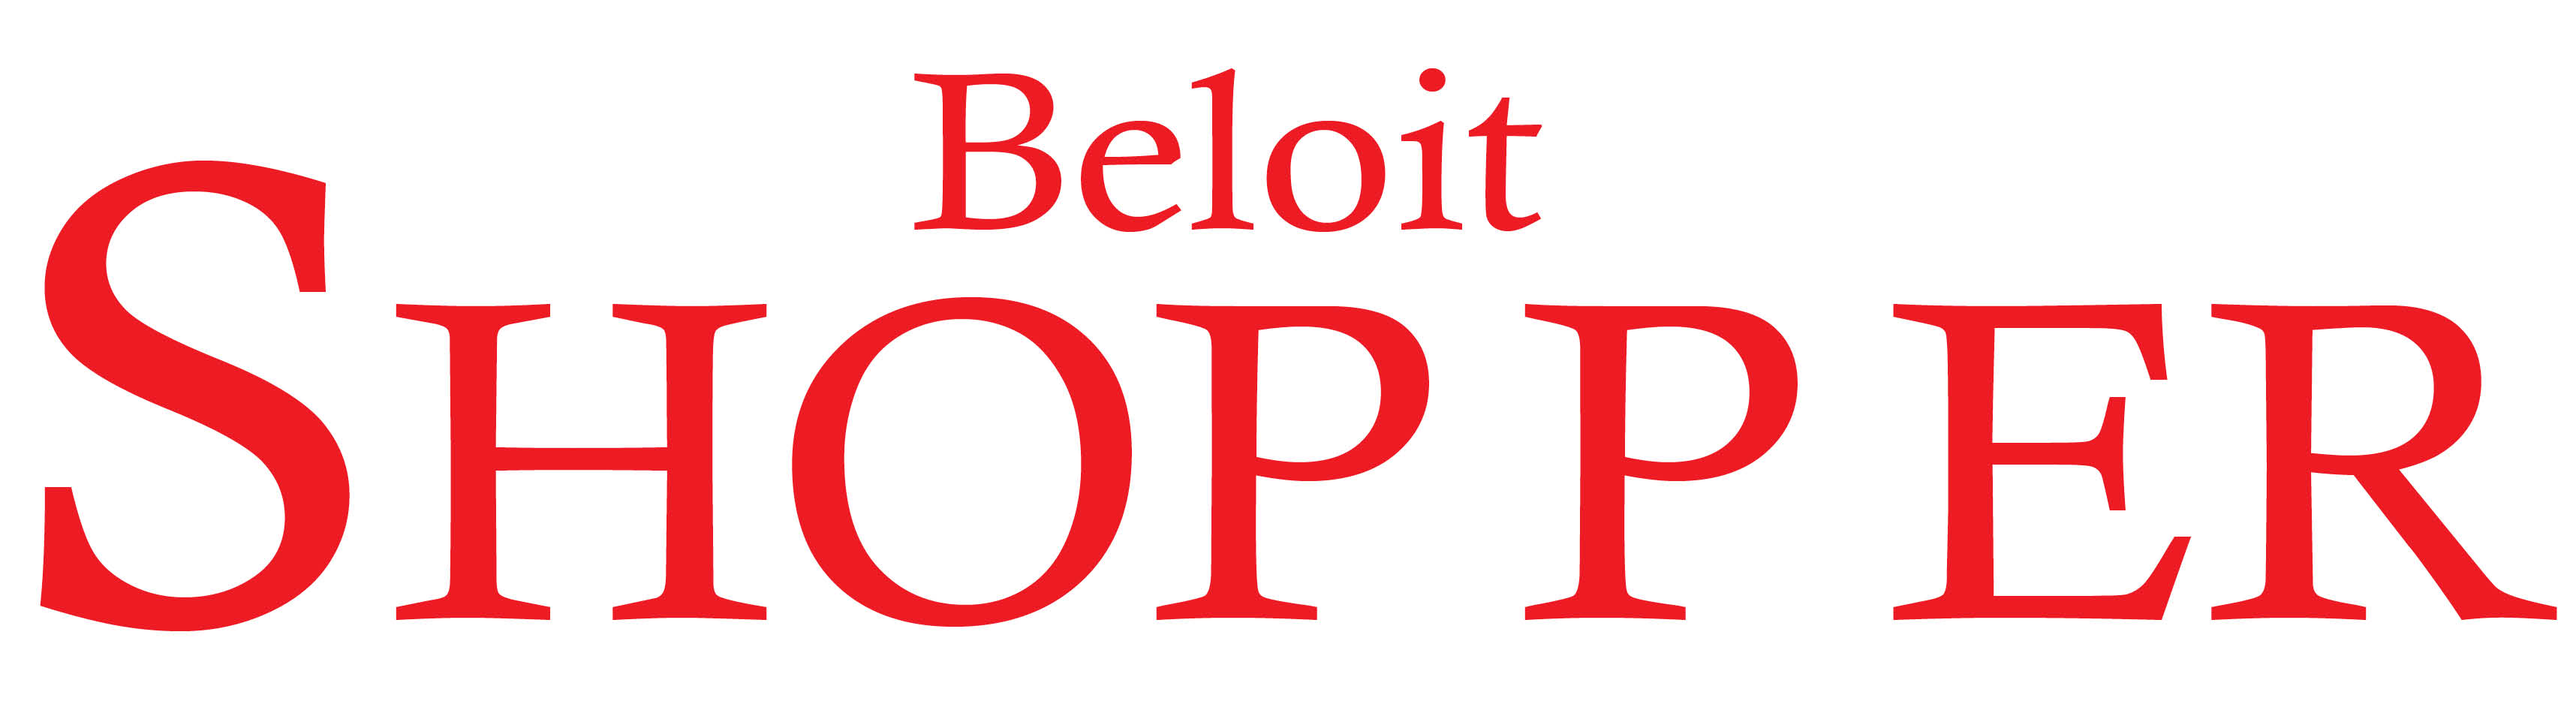 8/23/18 Beloit Shopper